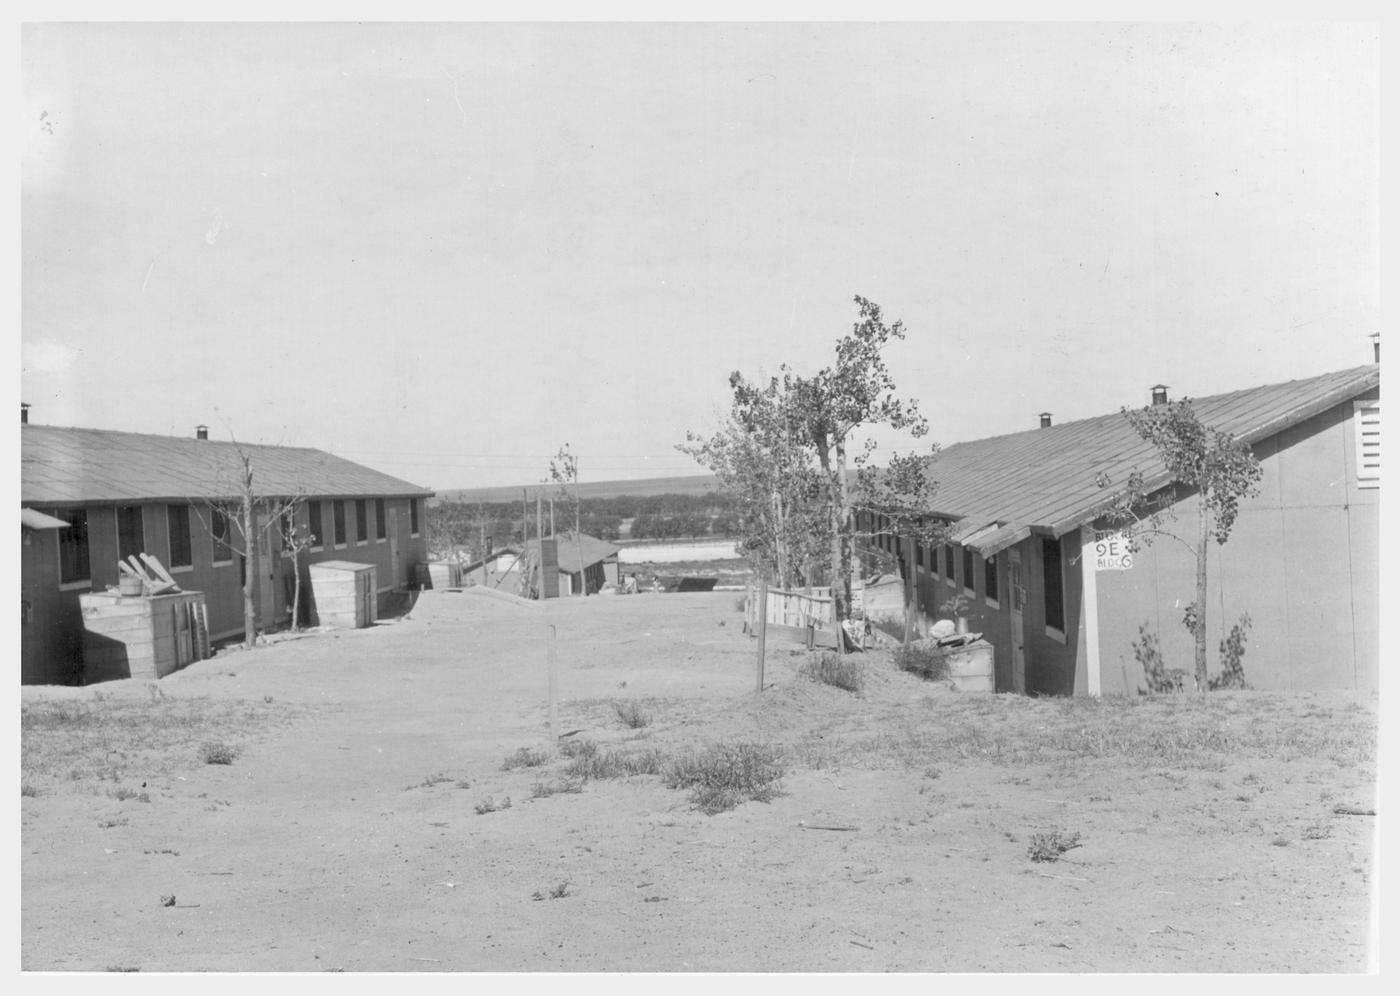 barracks with gardensand trees.jpg